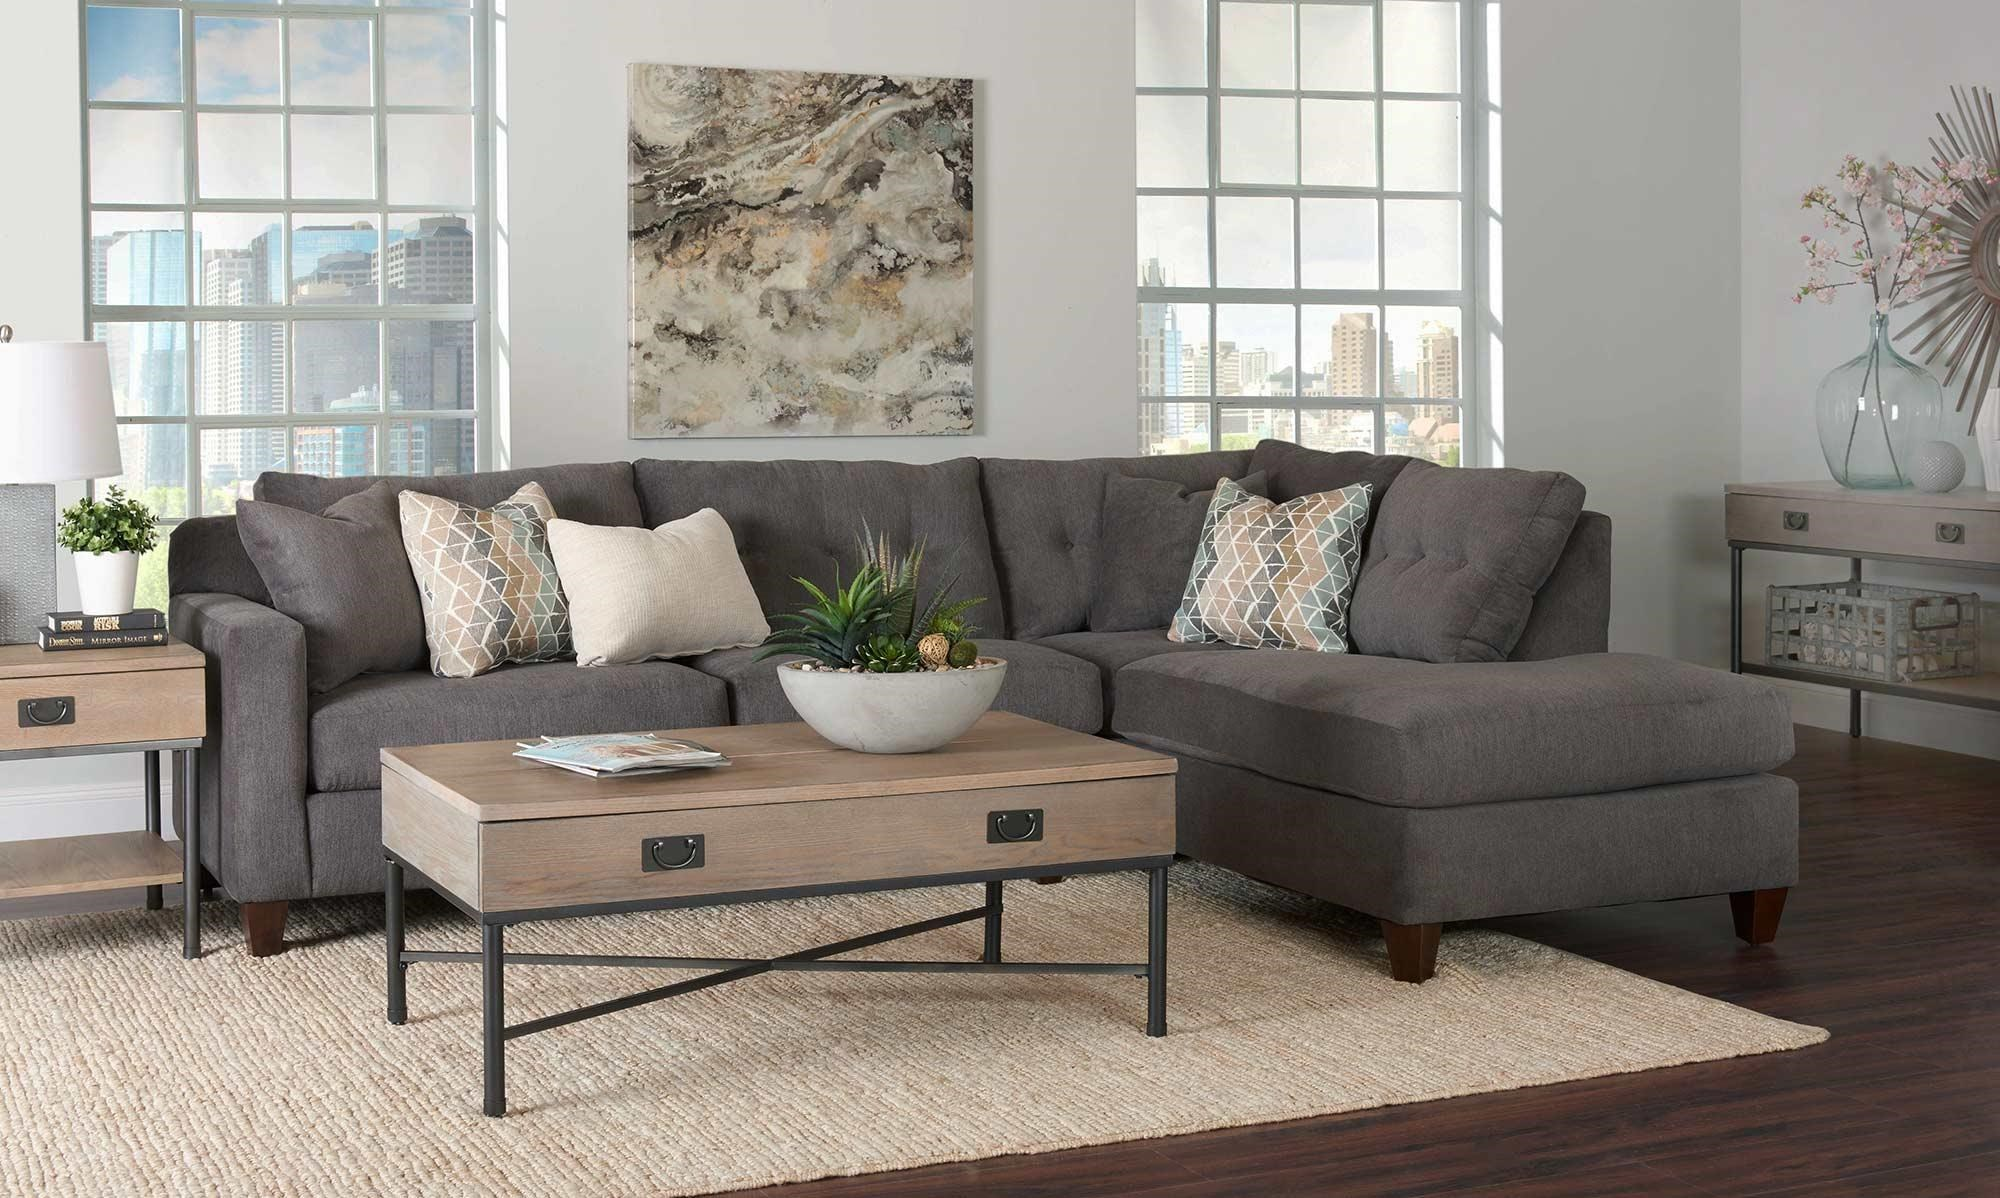 Beau Aluna 2PC Sectional Sofa W/ Chaise By Simple Elegance At Rotmans